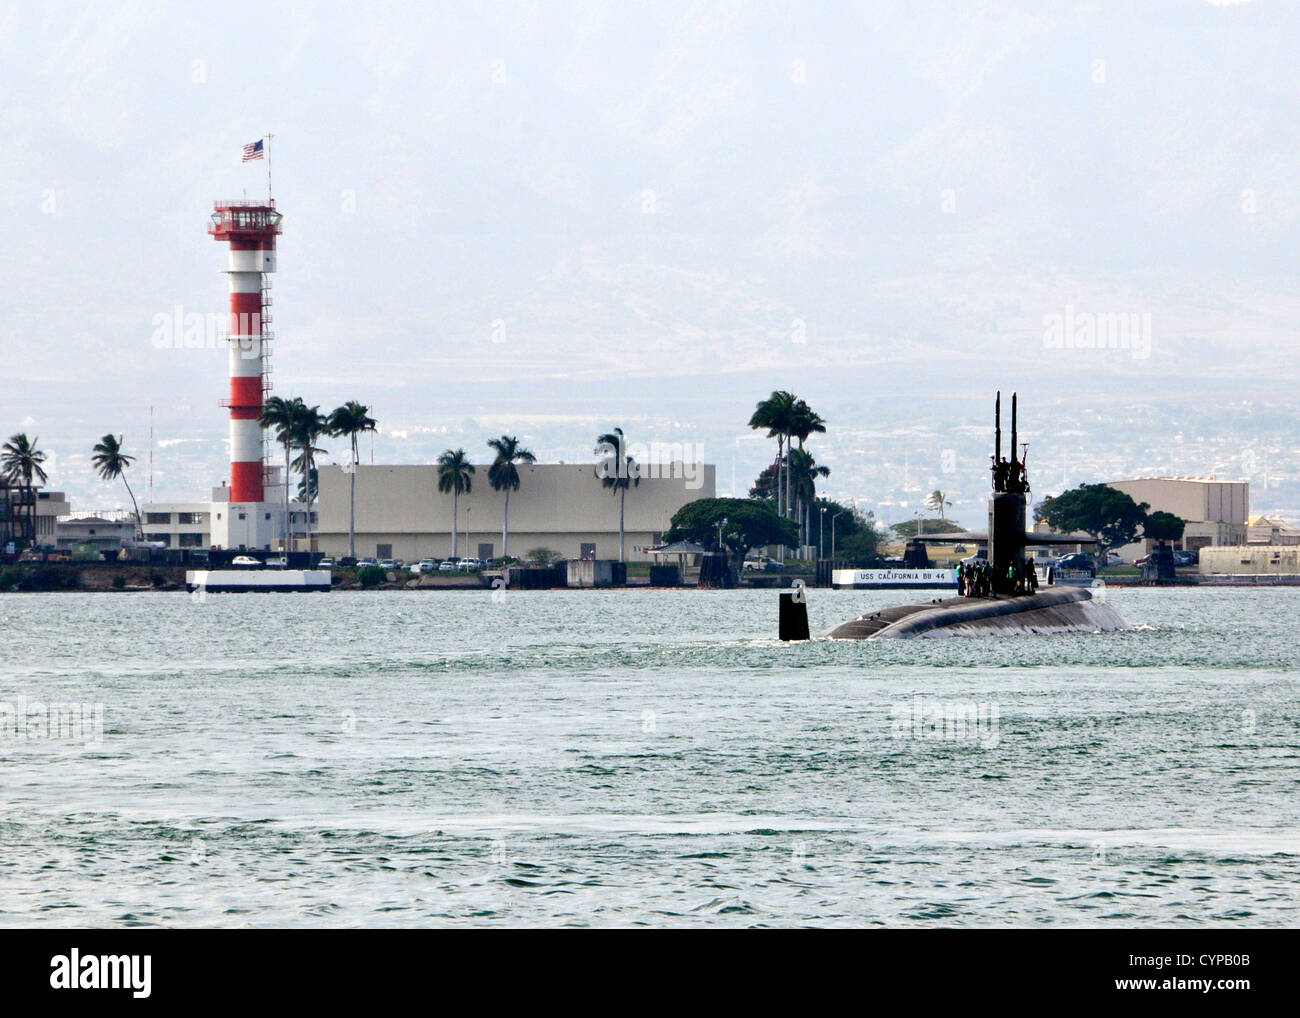 PEARL HARBOR (Nov. 5, 2012) The Los Angeles-class fast attack submarine USS Jacksonville (SSN 699) departs Joint - Stock Image